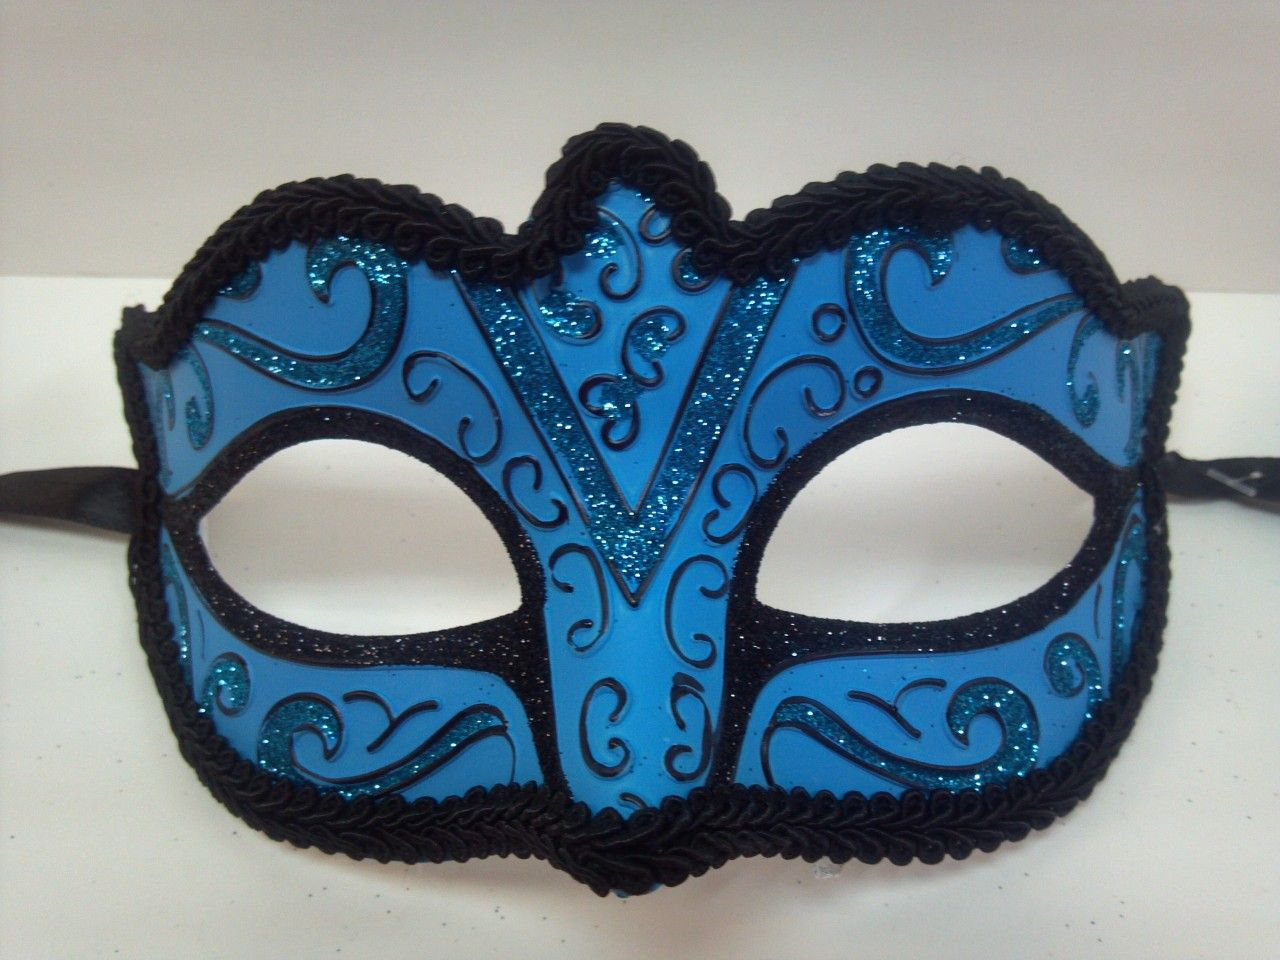 Masquerade mask masquerade mask vine mask metal lace masquerade - Explore Black Masquerade Masks And More